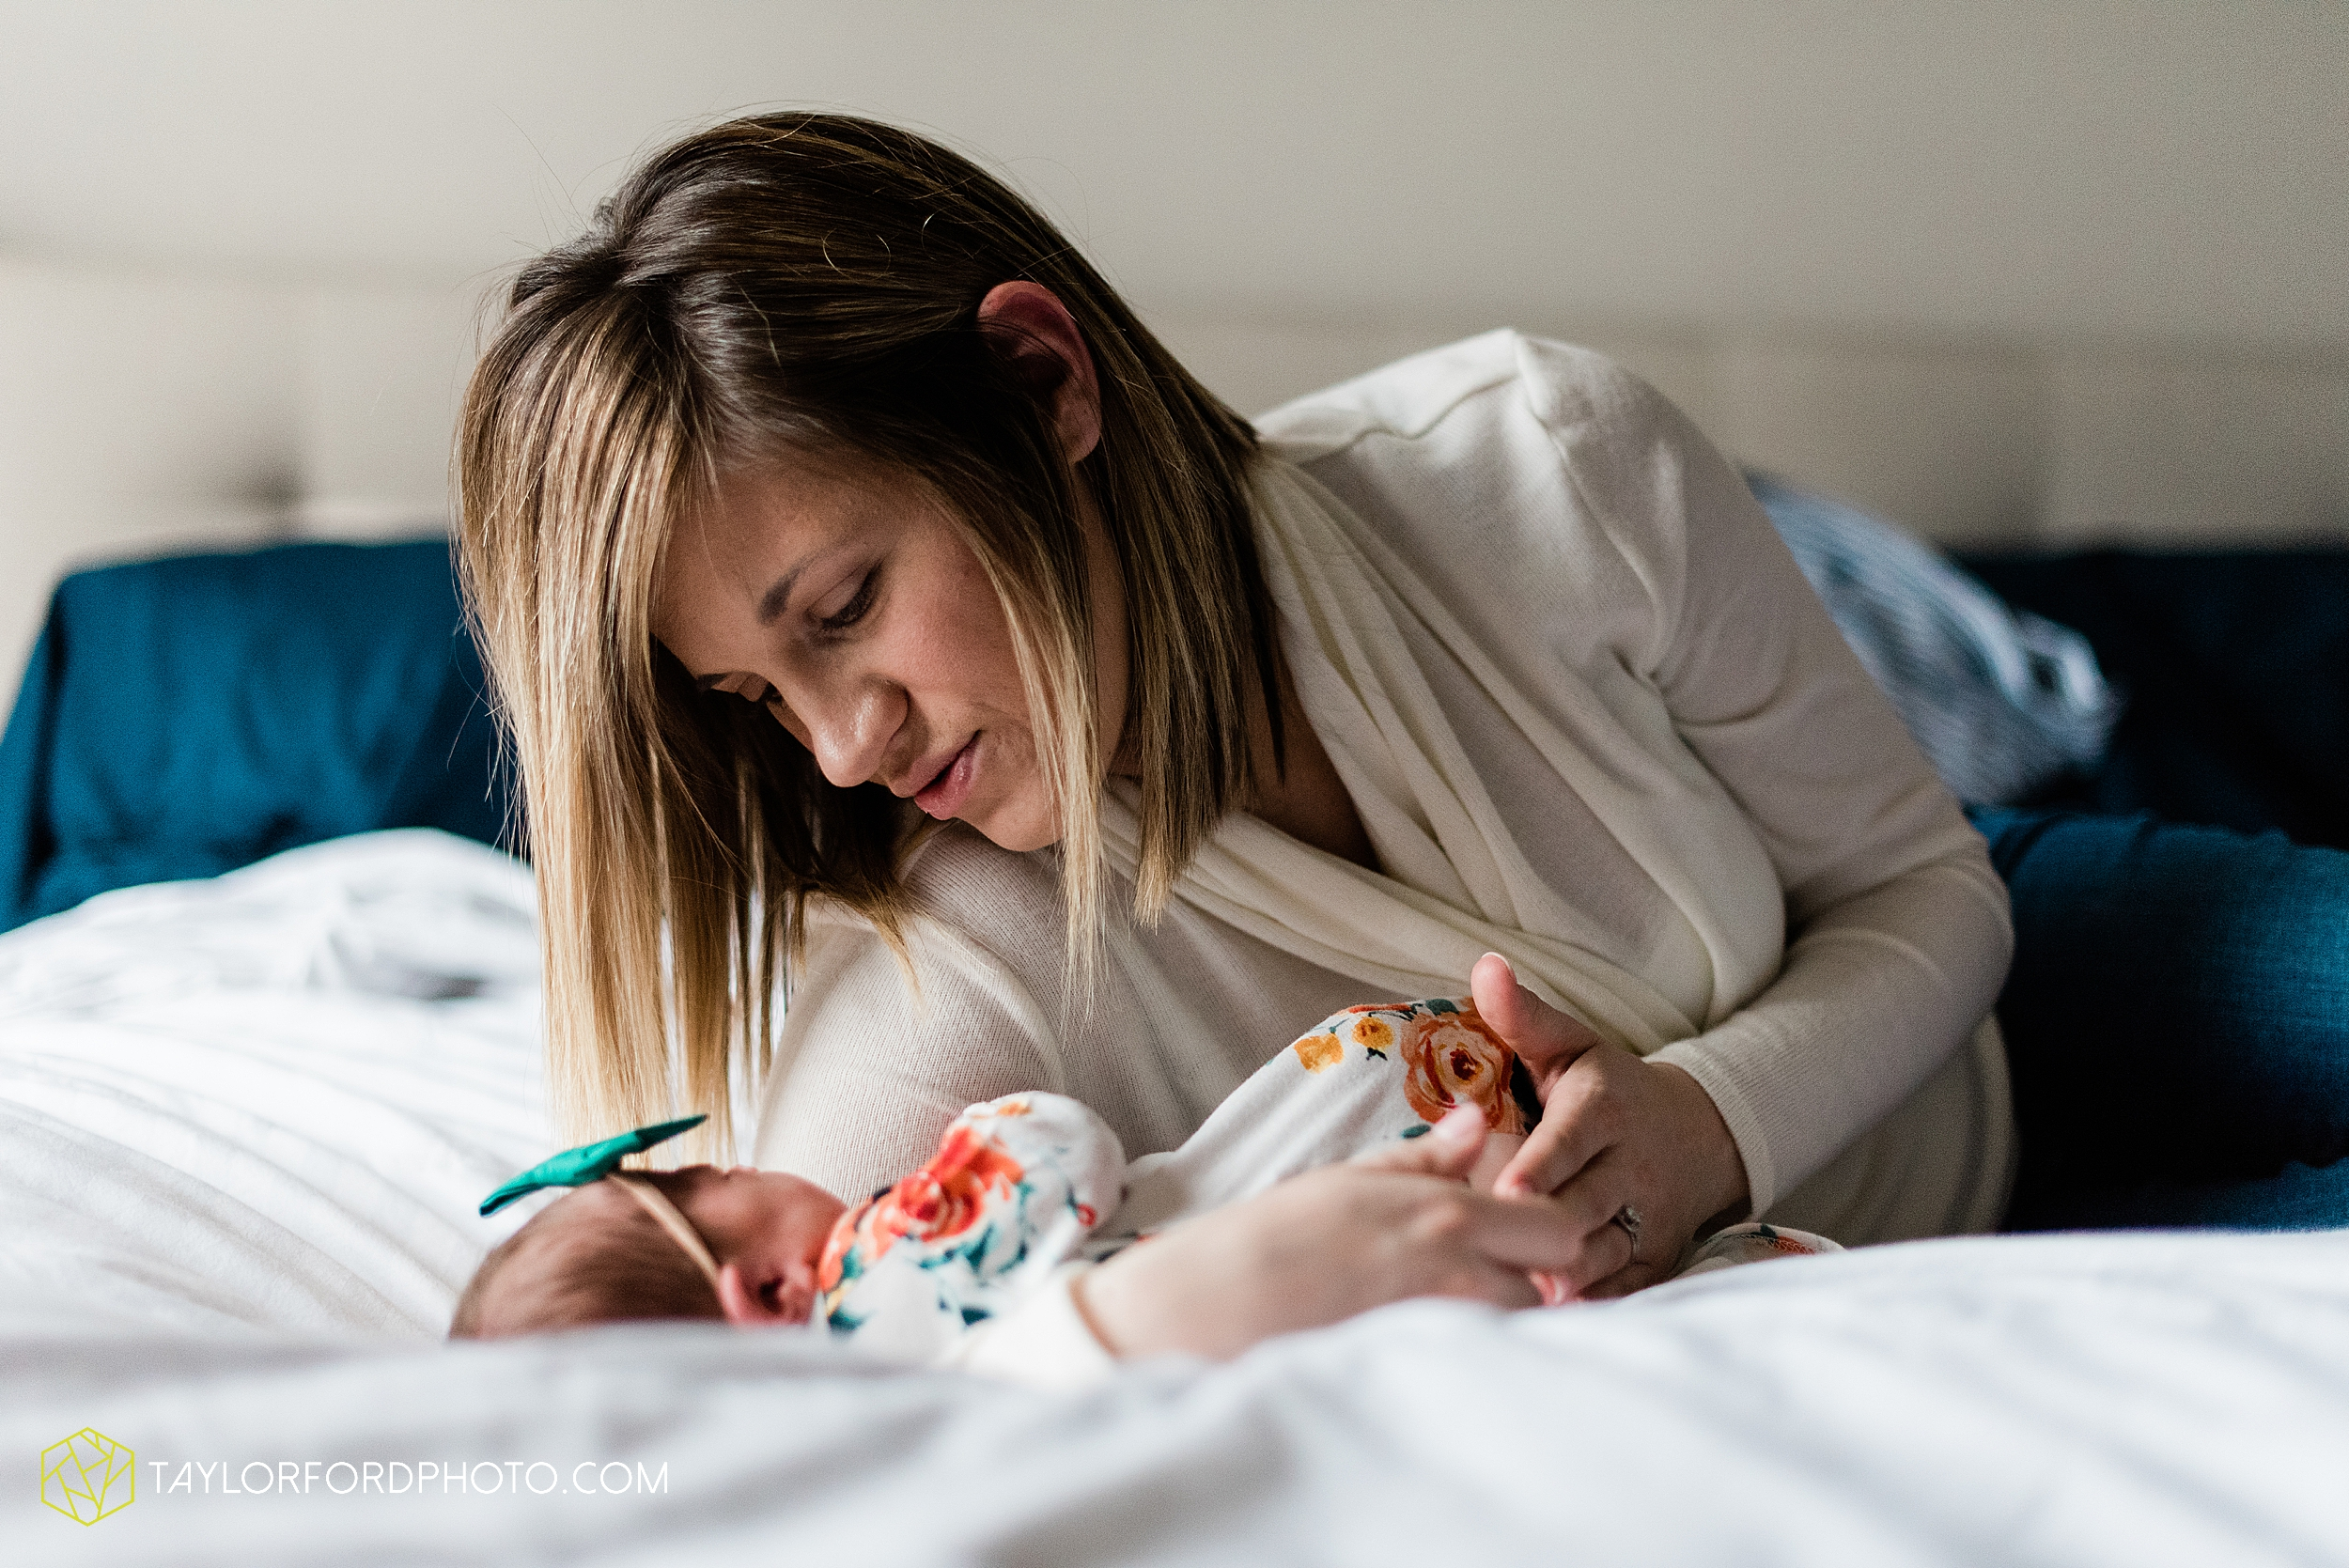 ashley-aaron-noraa-lifestyle-at-home-family-newborn-blacklick-columbus-ohio-photography-taylor-ford-hirschy-photographer_2342.jpg